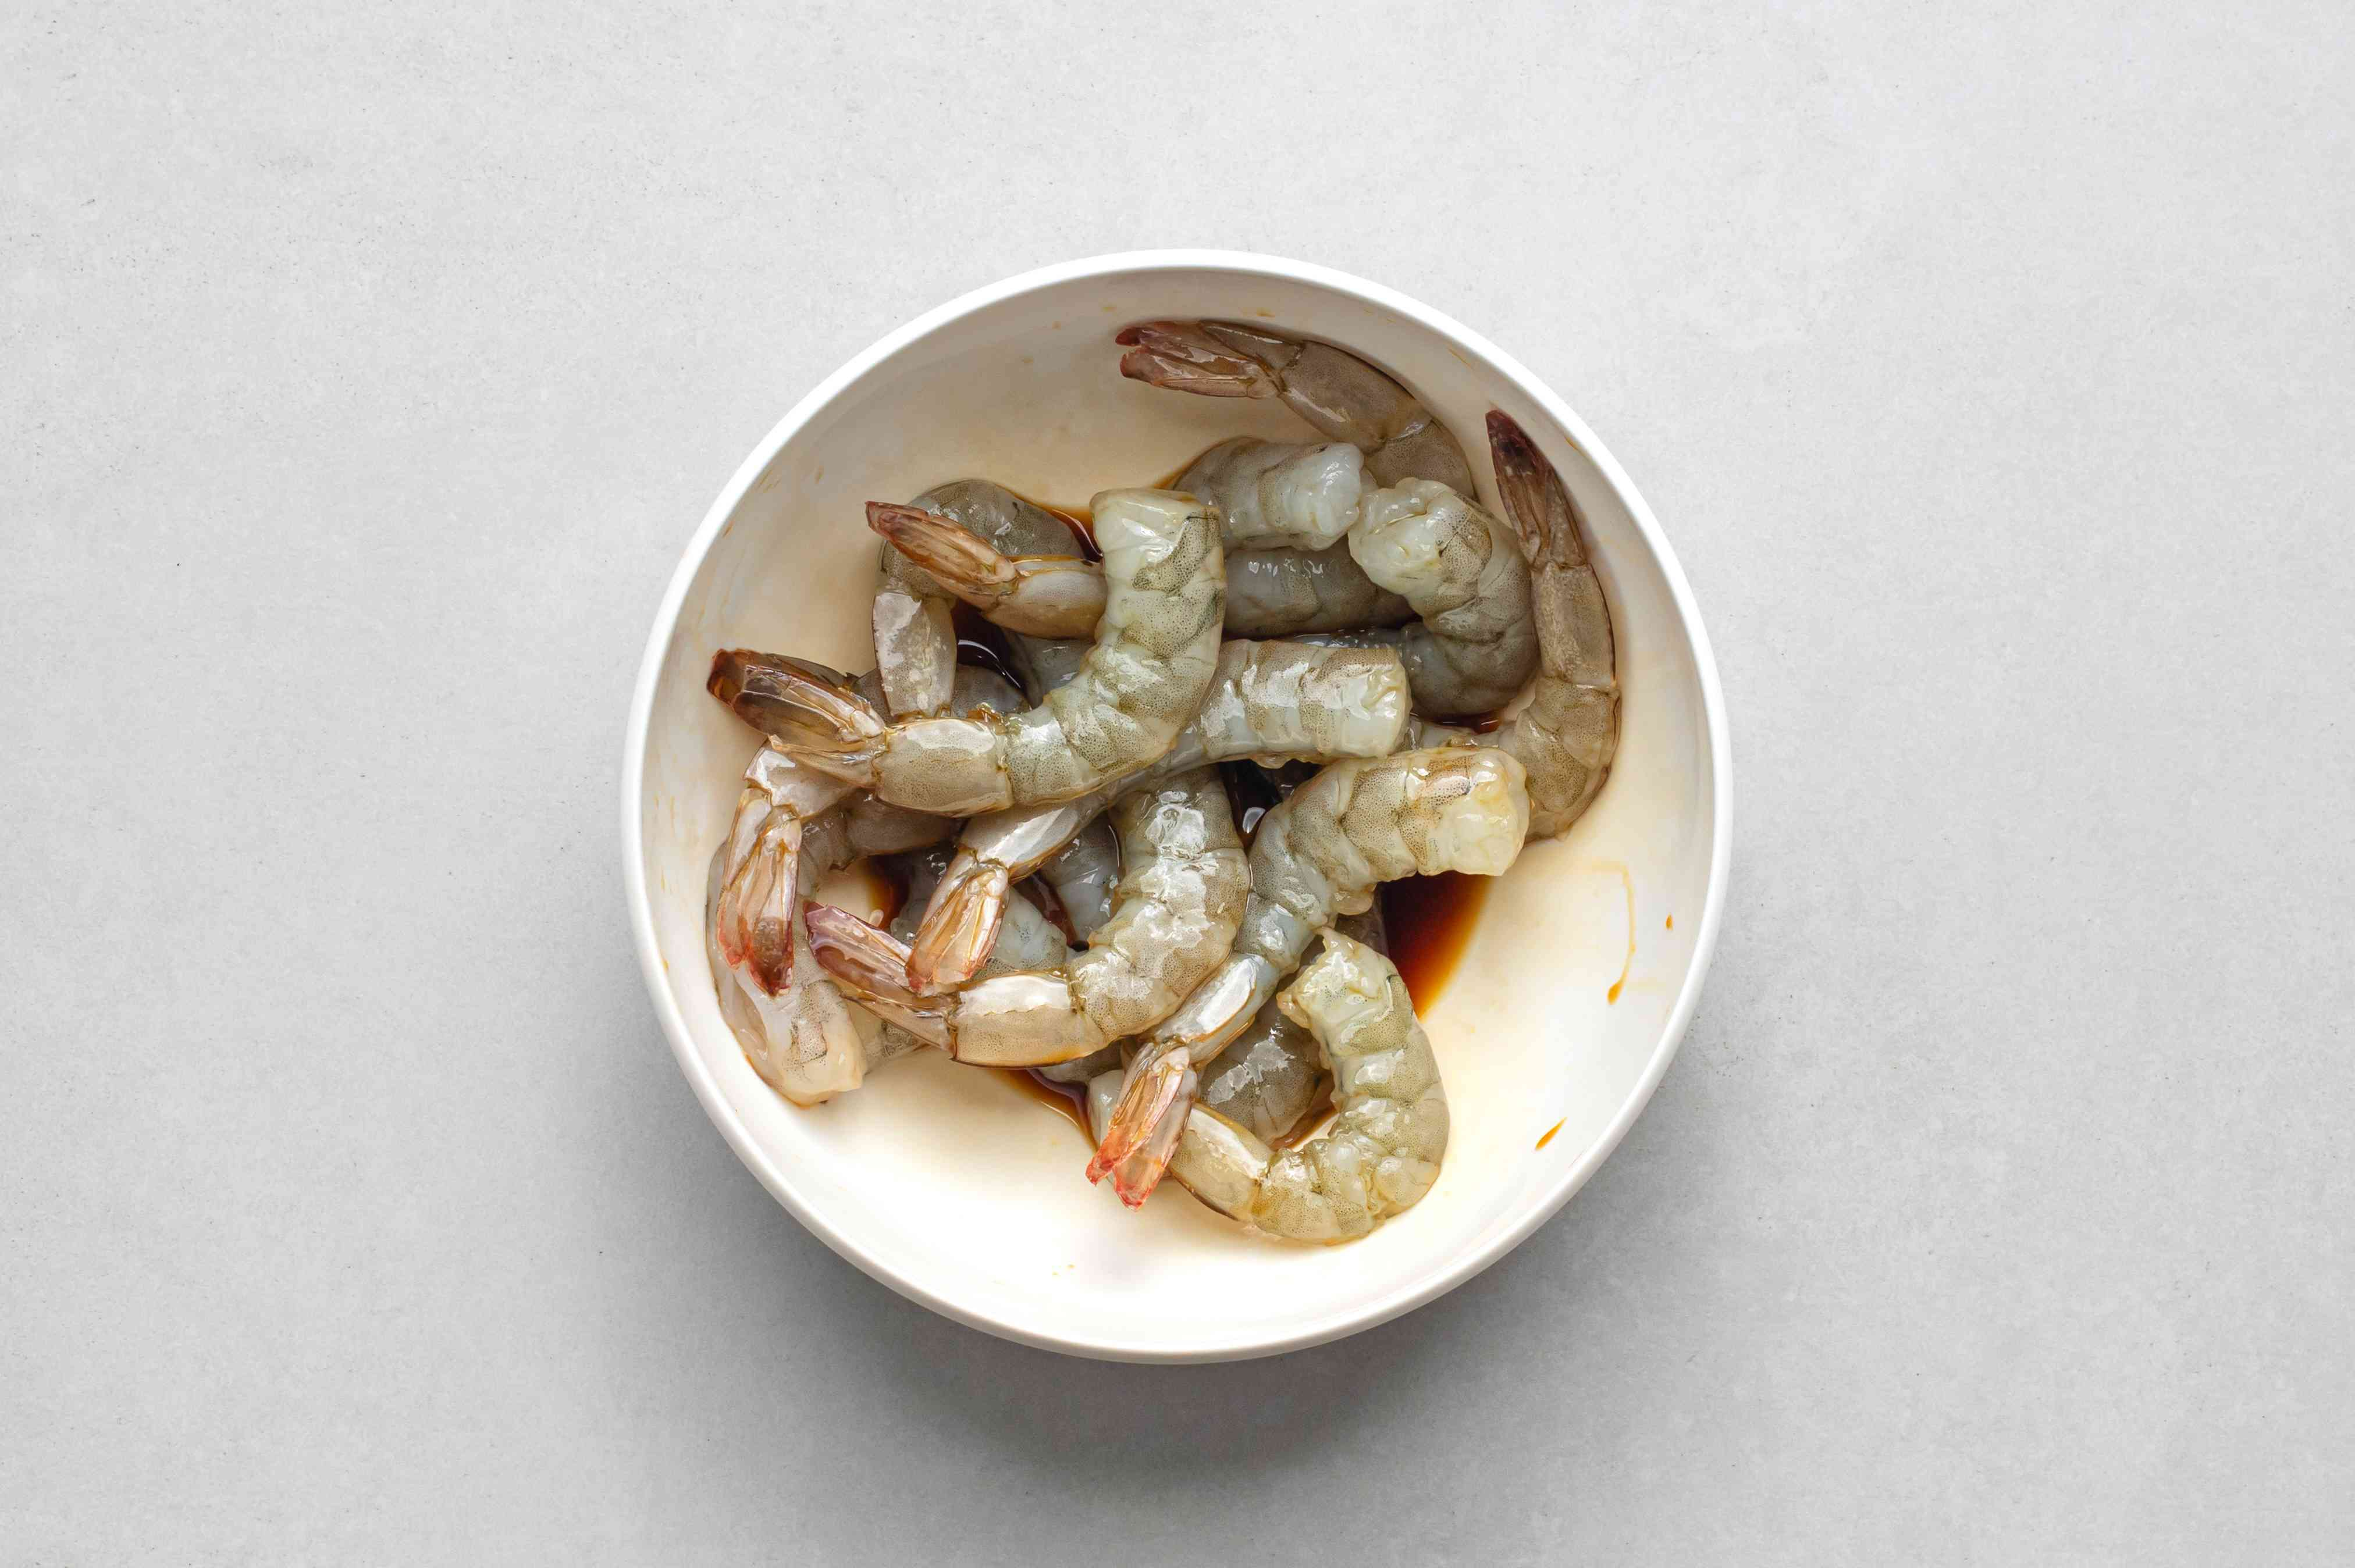 toss the shrimp with the tamari in a bowl